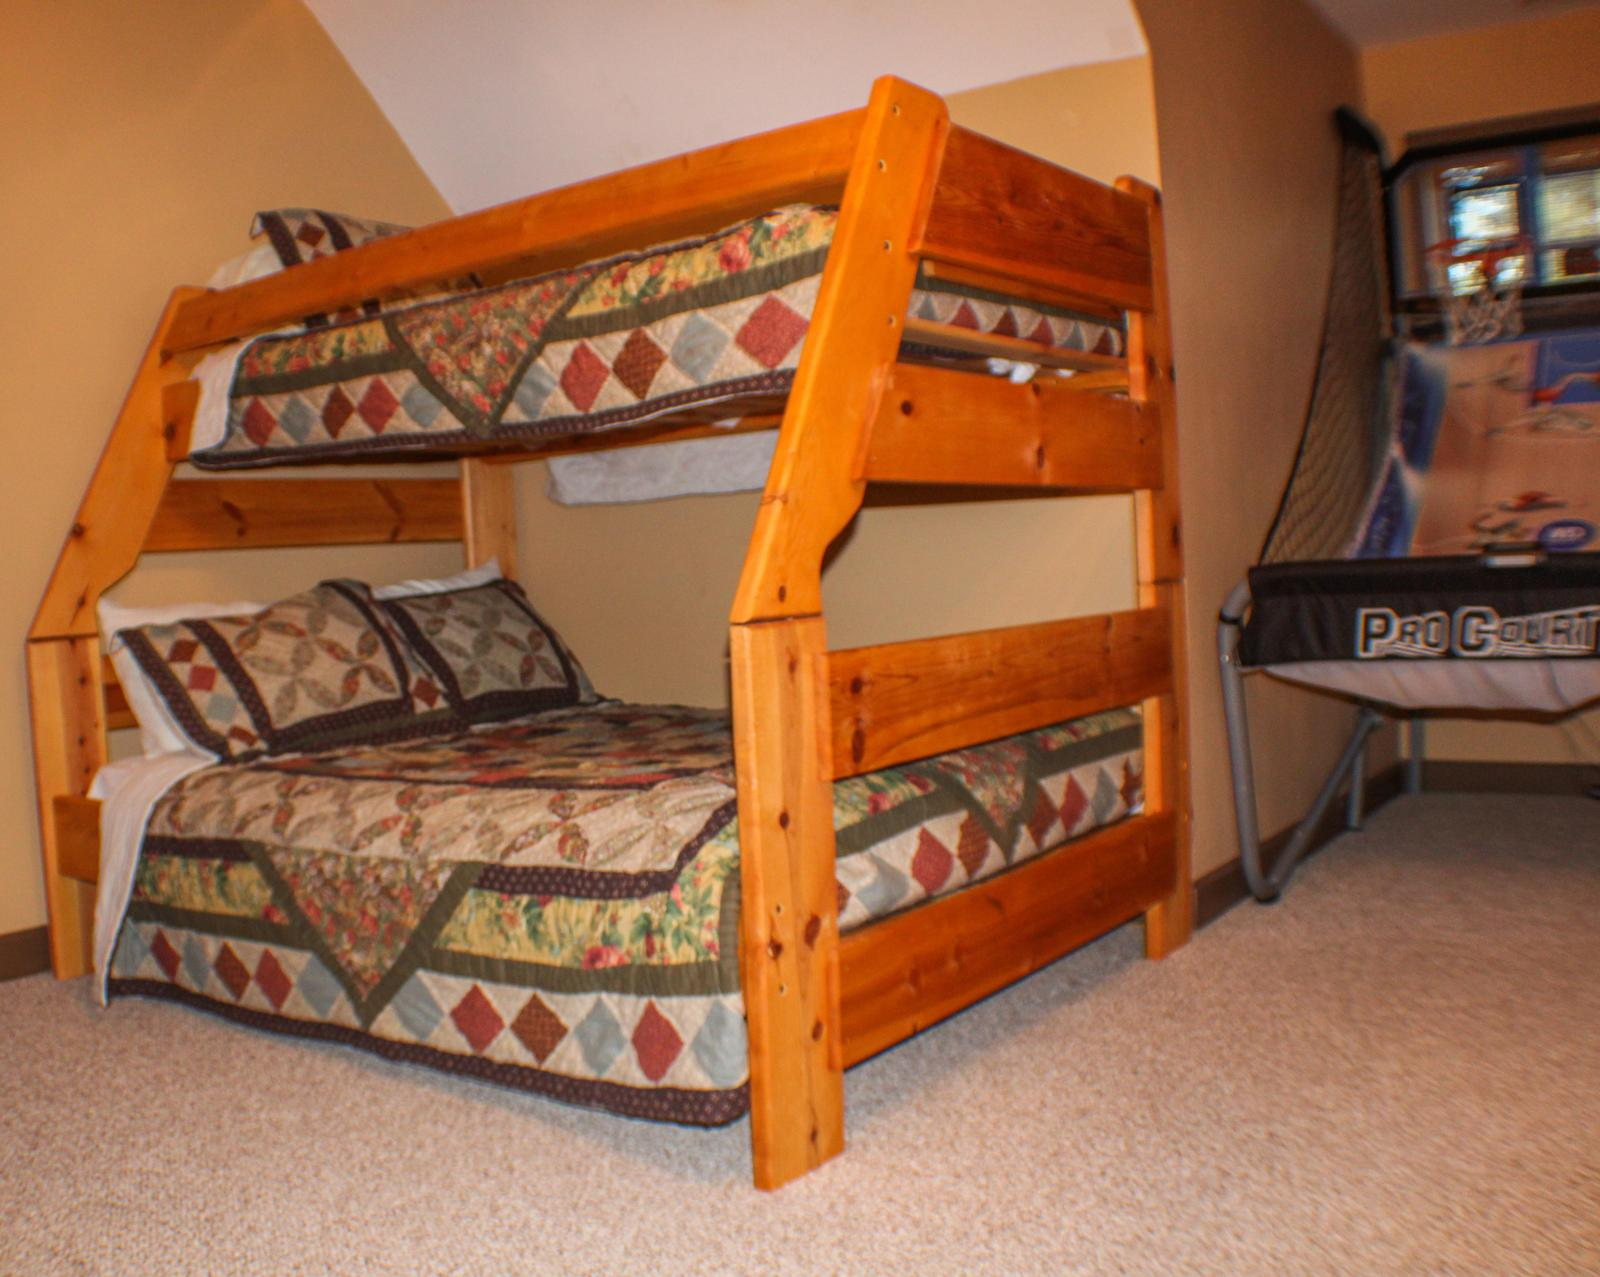 THIRD BEDROOM(FIRST BUNKBED)